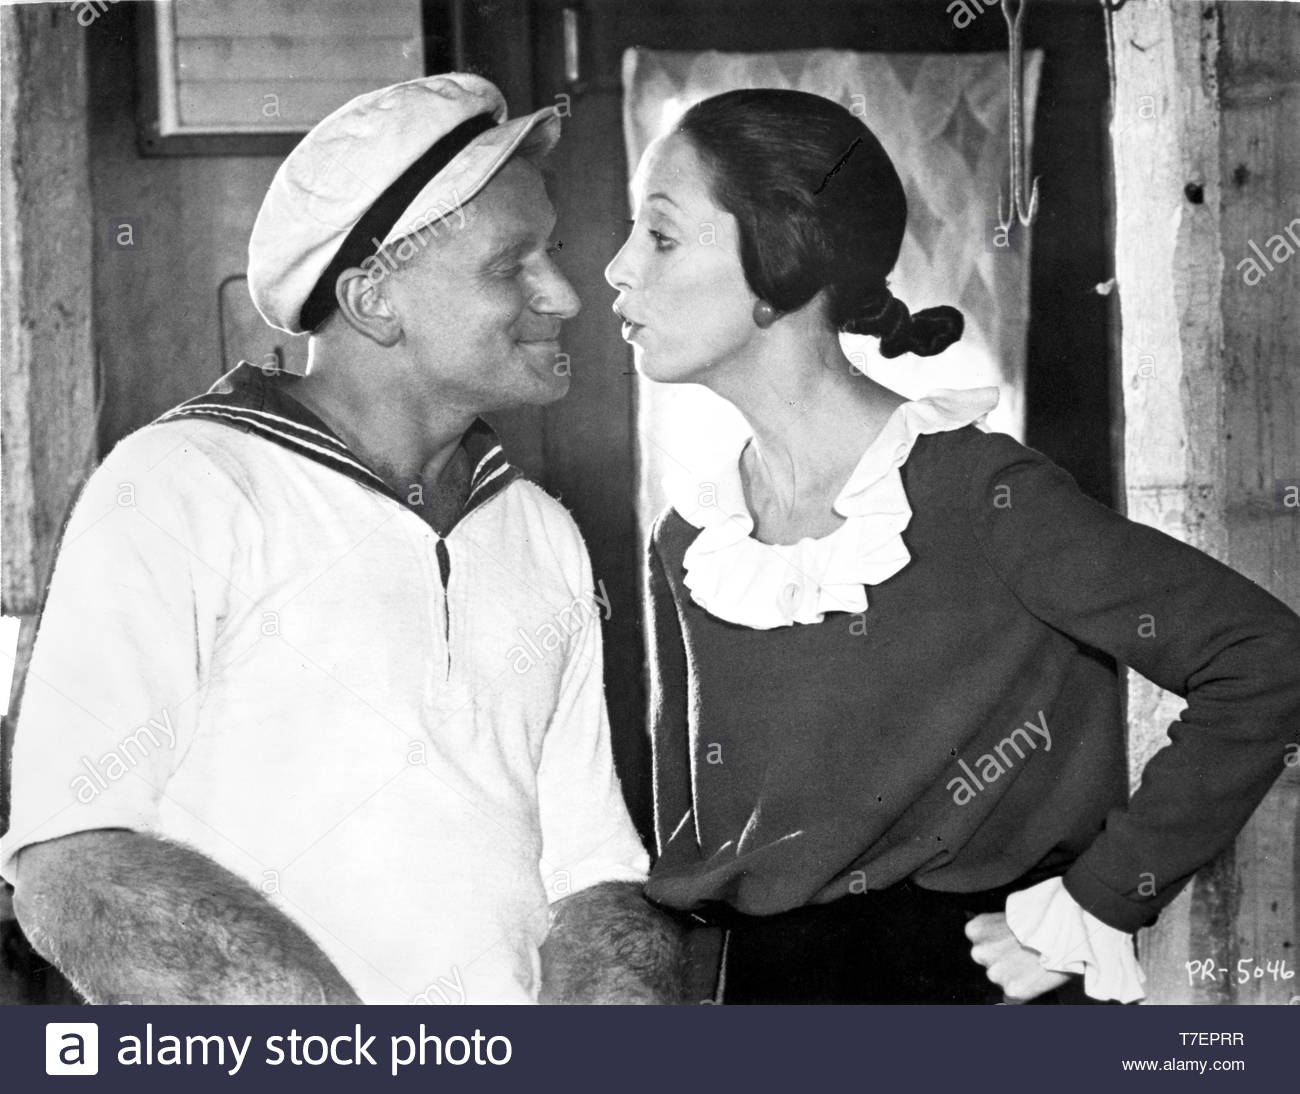 Film still from Popeye Robin Williams and Shelley Duvalle Credit: MSNGlobe / MediaPunch - Stock Image